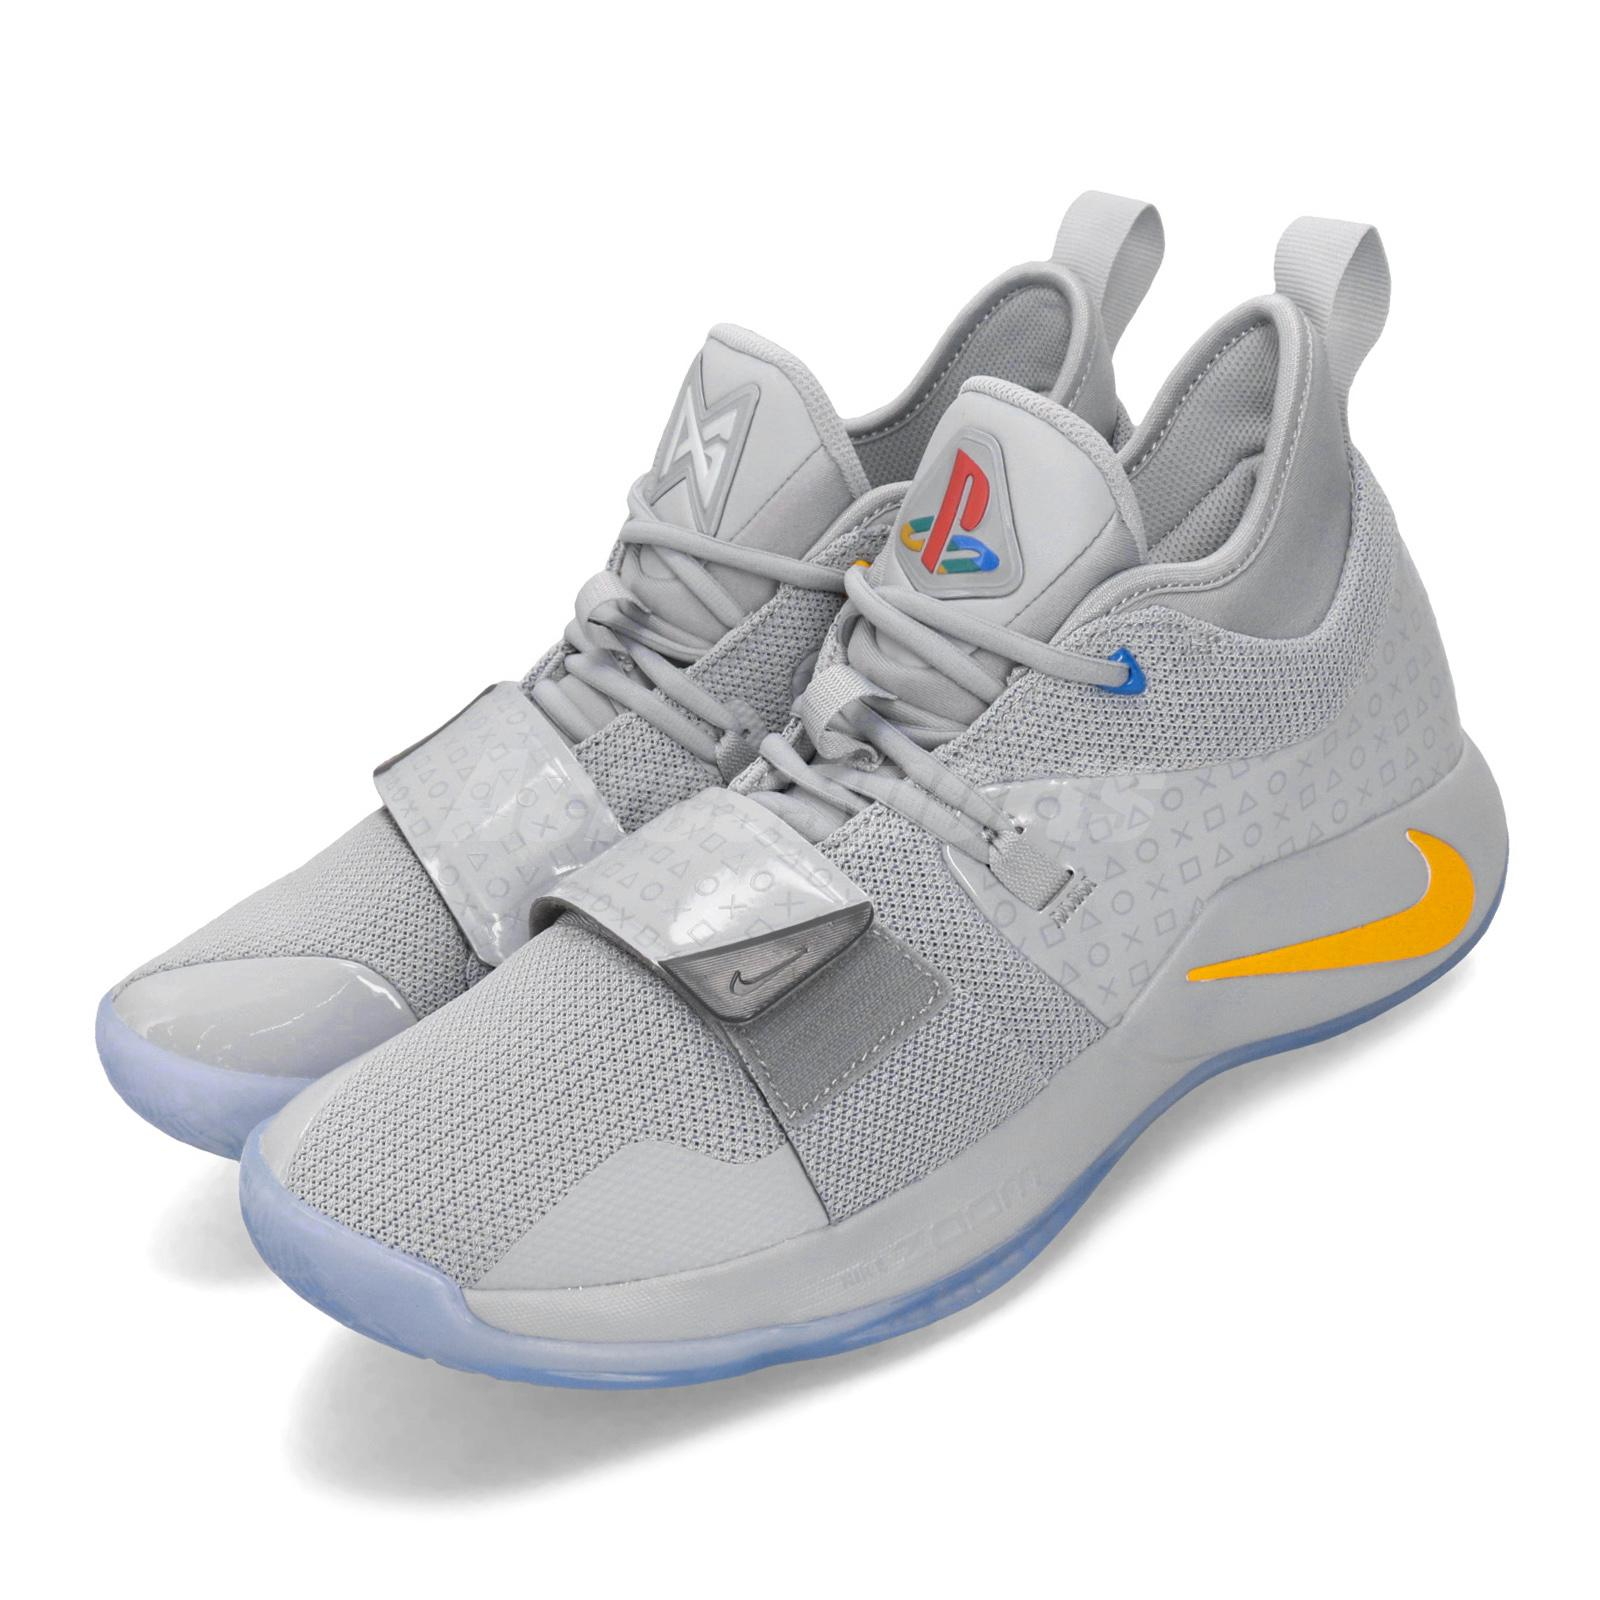 factory authentic e46d3 0a5f8 Details about Nike PG 2.5 Playstation EP PS Paul George Grey Yellow Men  Shoes BQ8391-001